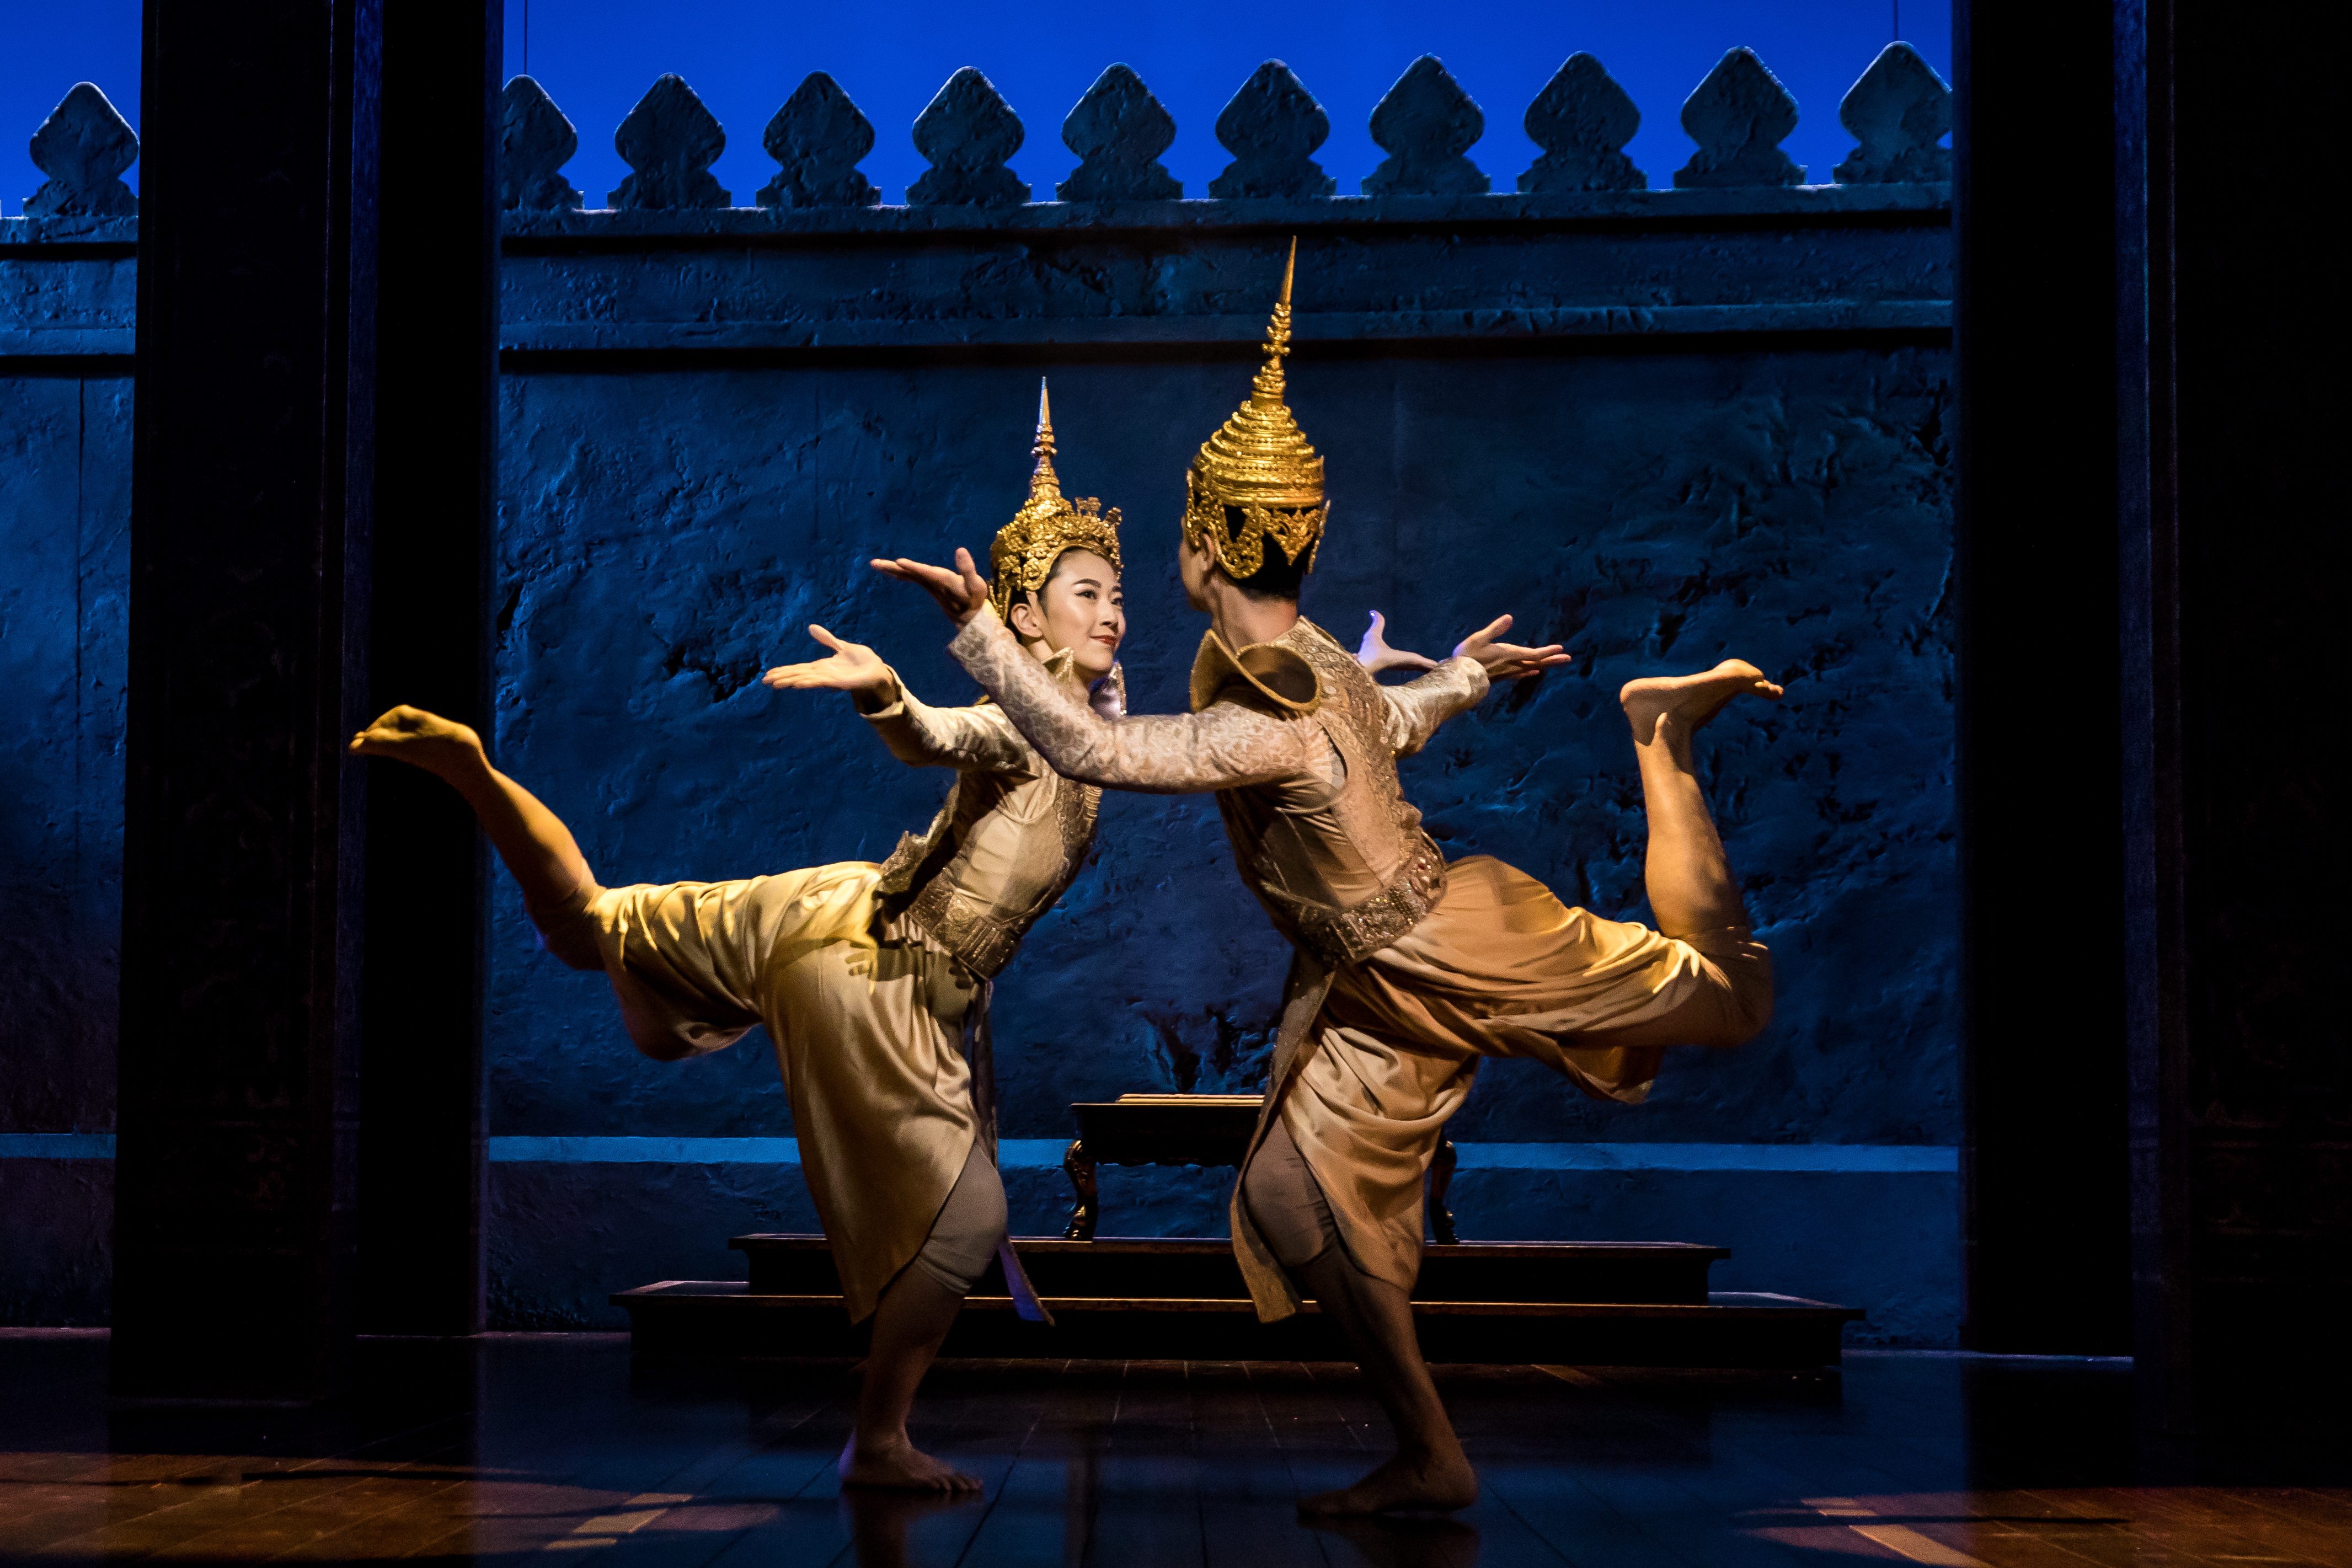 50% rabatt speical-erbjudande nytt billigt The King and I review at London Palladium – 'opulent and intelligent'